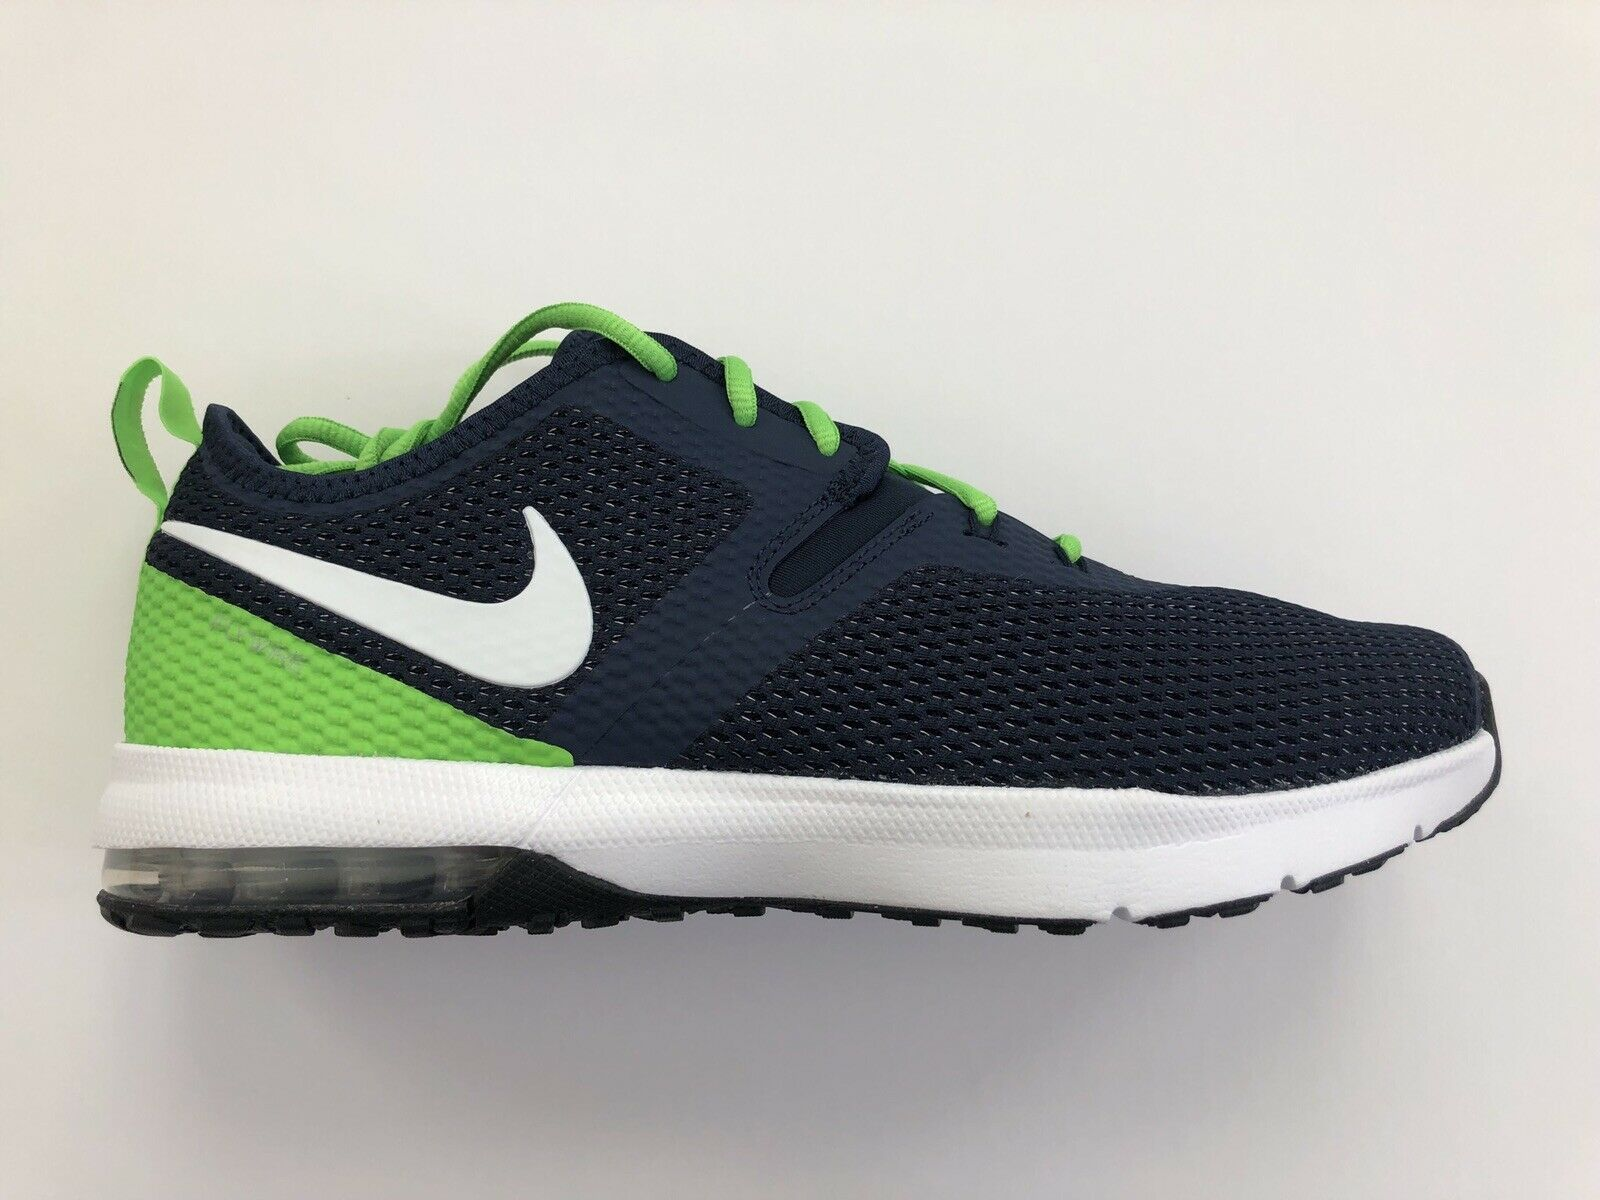 Nike Seattle Seahawks Air Max Typha 2 NFL shoes AR0516-400 Size 12.5